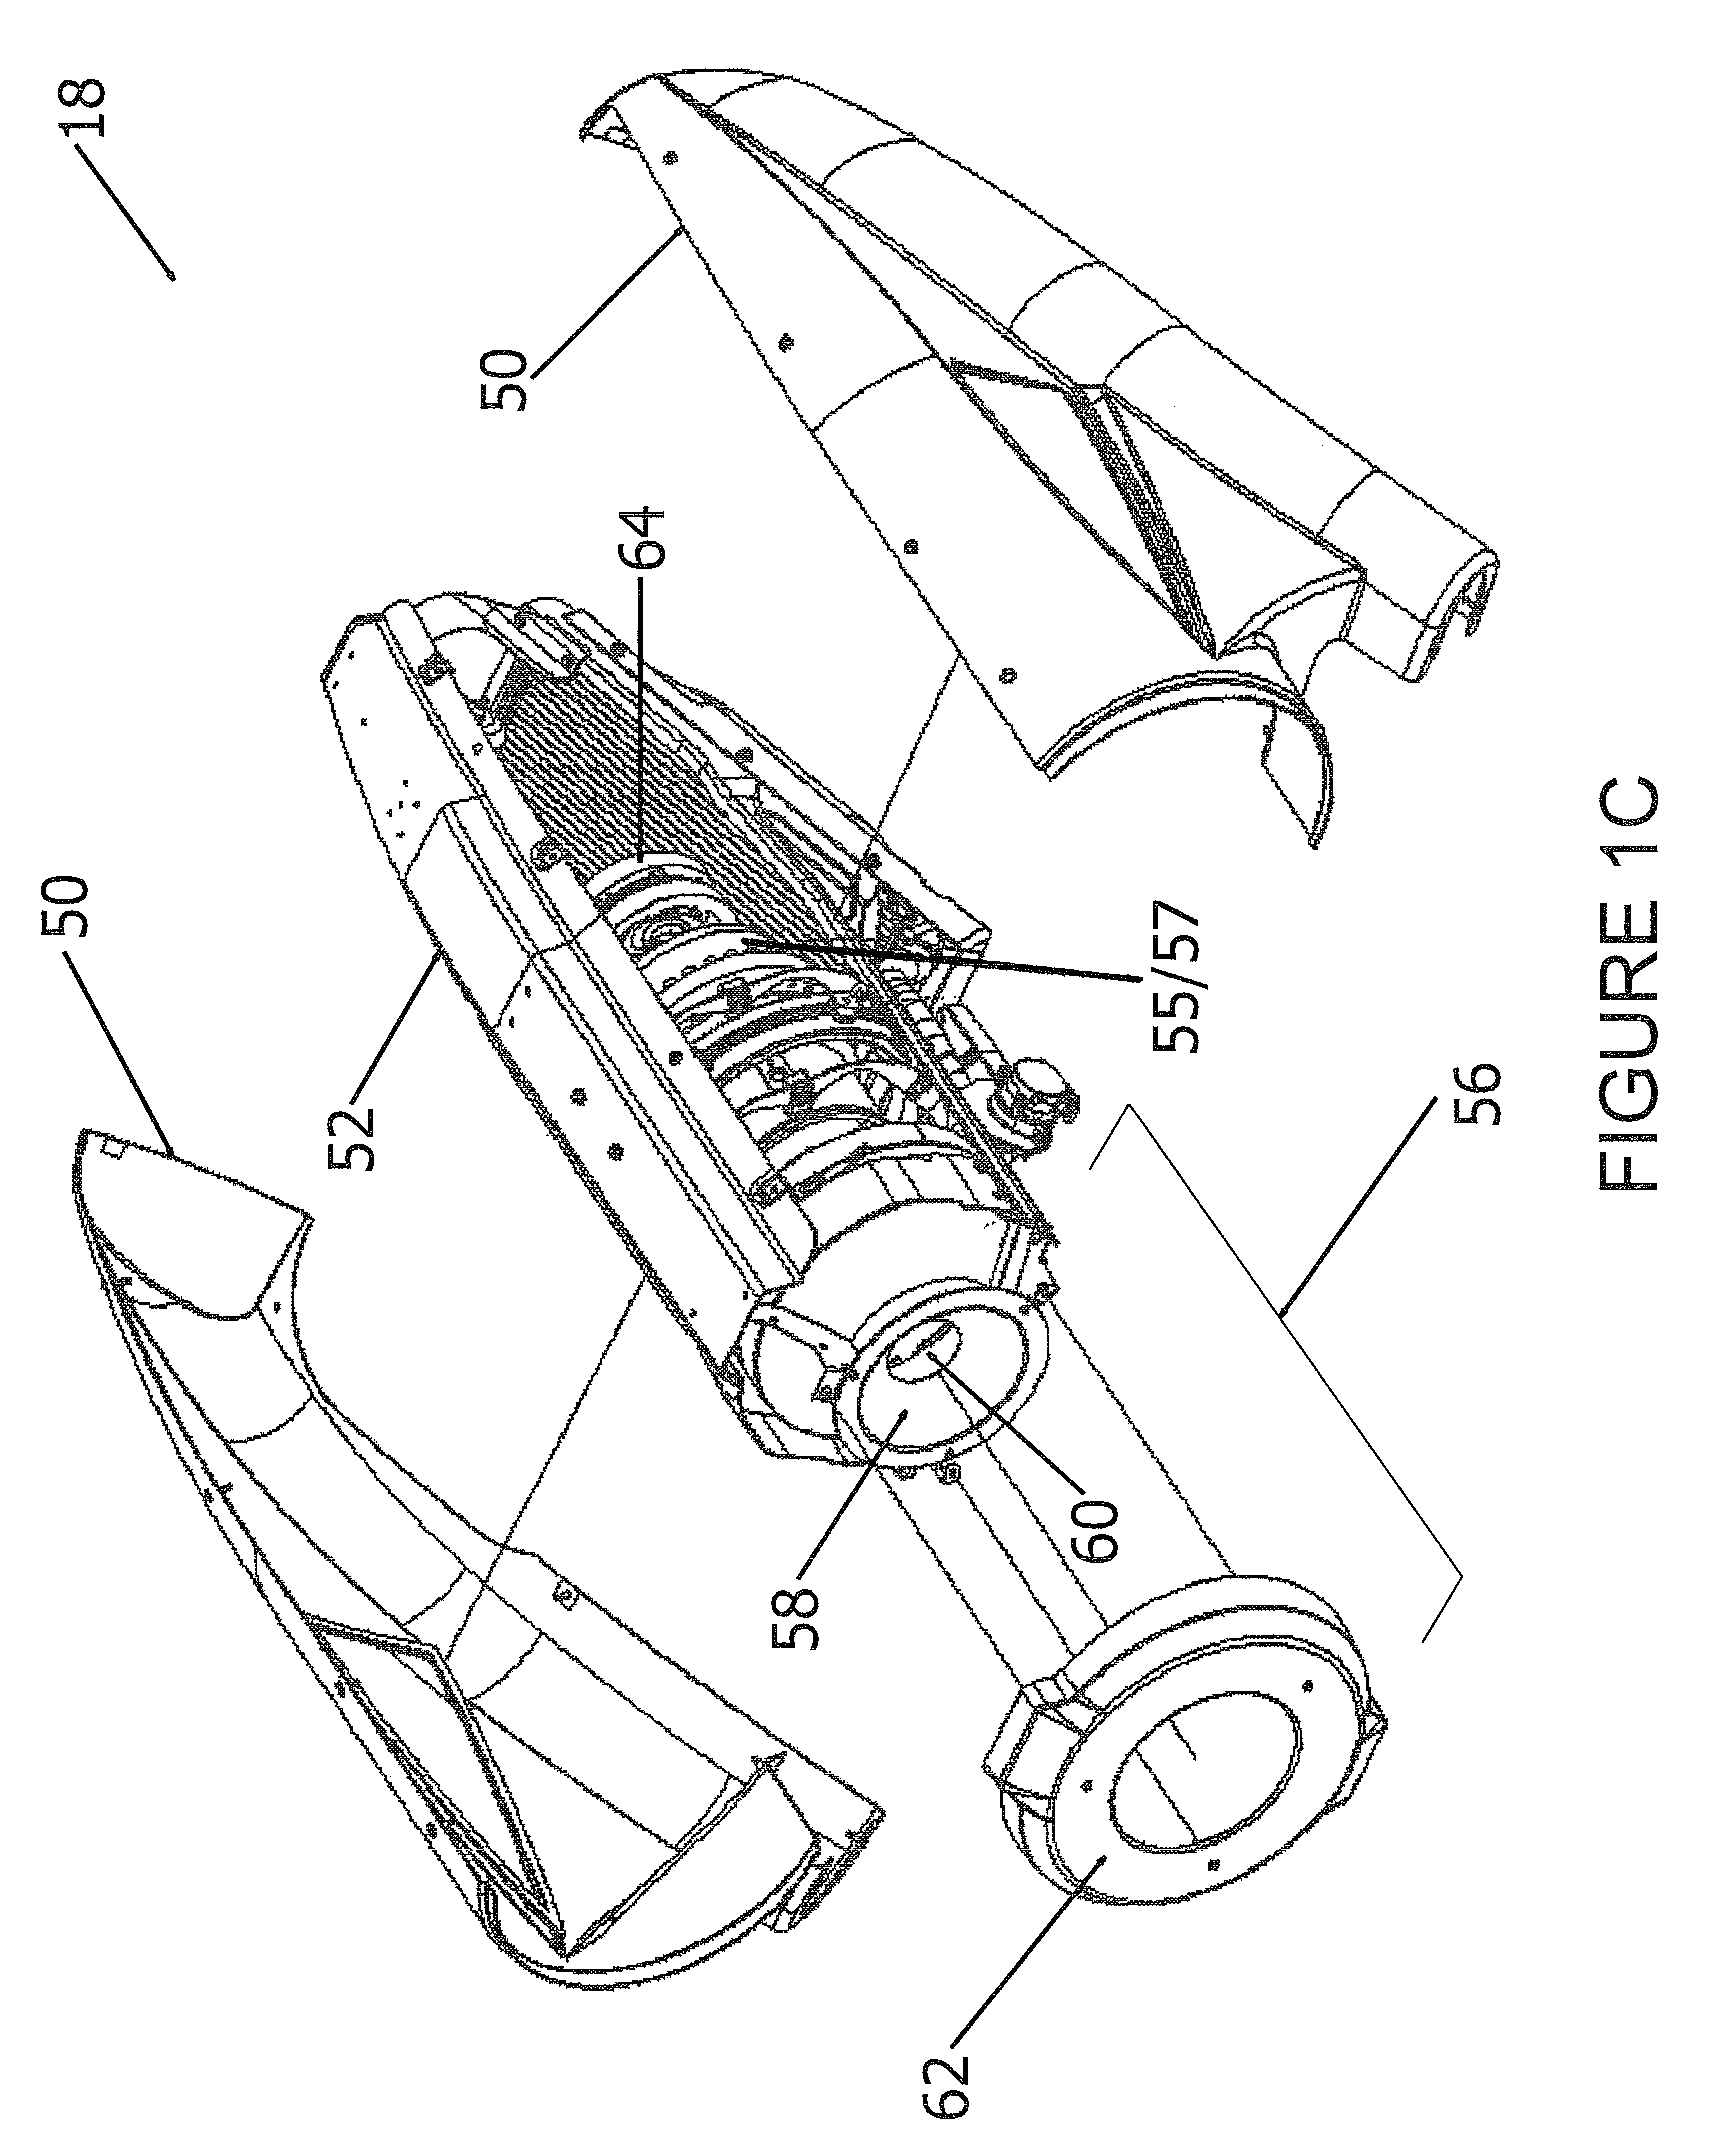 hight resolution of stirling engine systems apparatus and methods us 8151568 b2 patent drawing